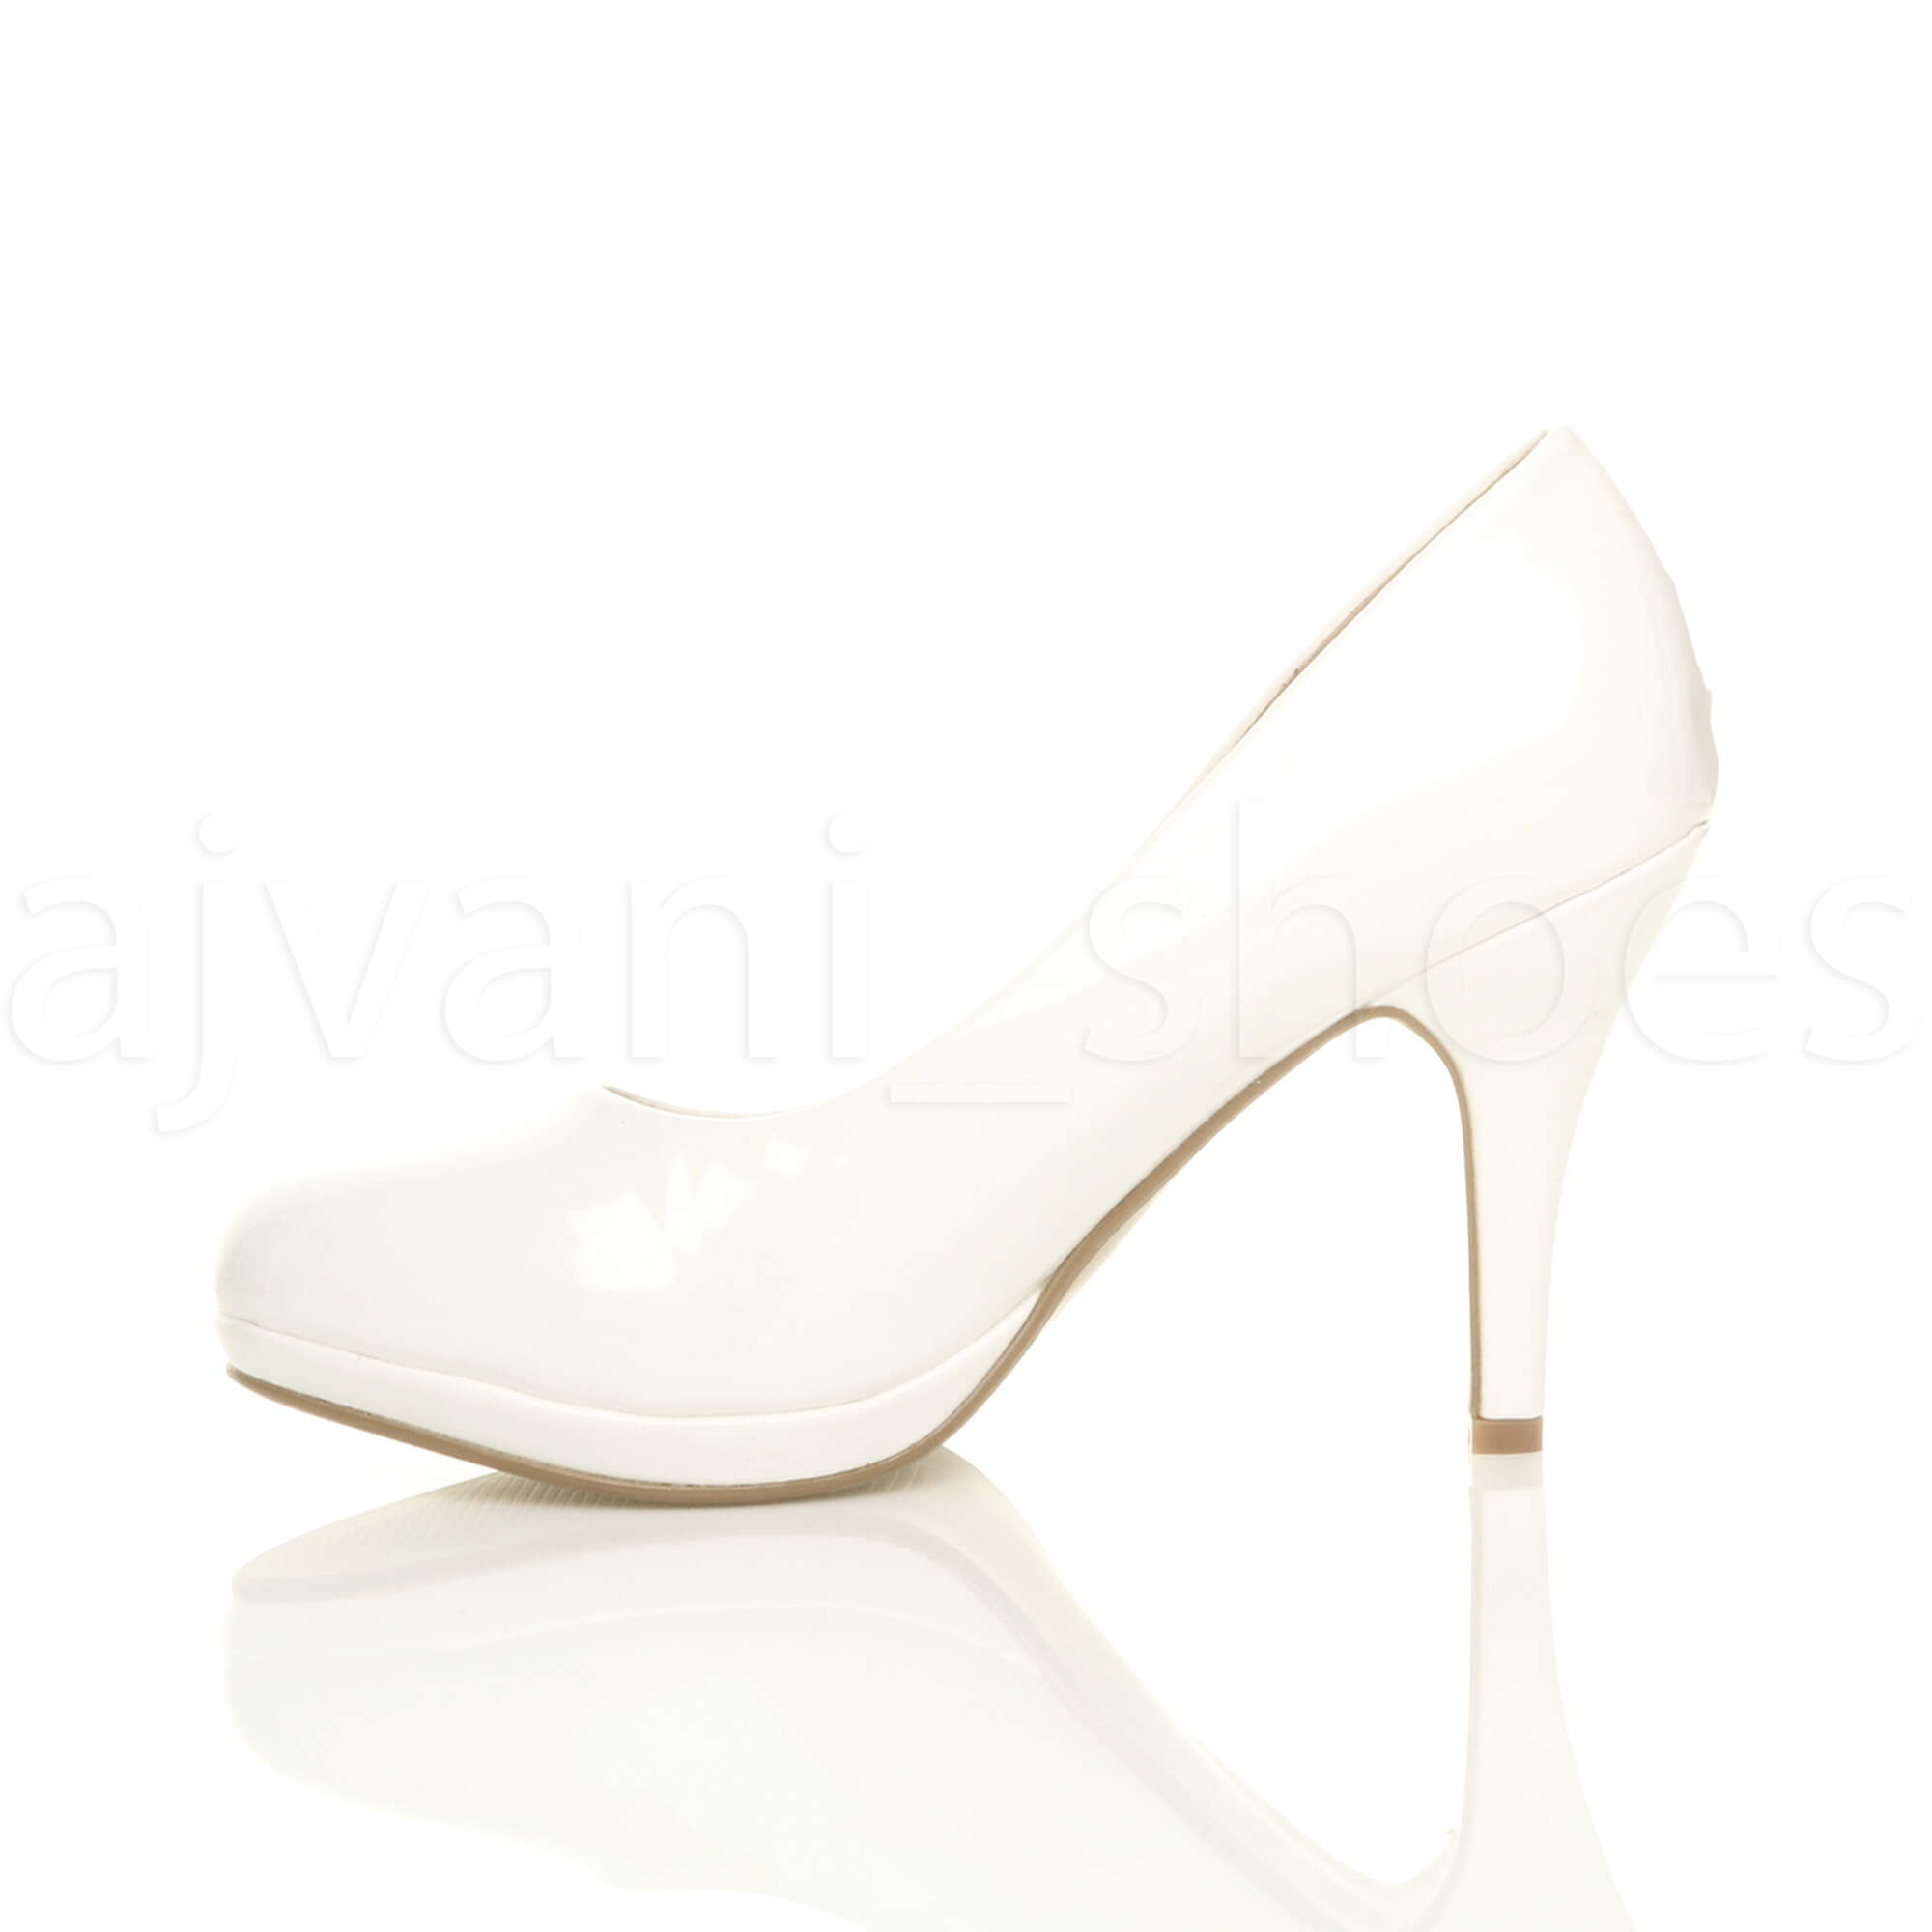 WOMENS-LADIES-MID-HIGH-HEEL-PLATFORM-PARTY-WORK-EVENING-COURT-SHOES-PUMPS-SIZE